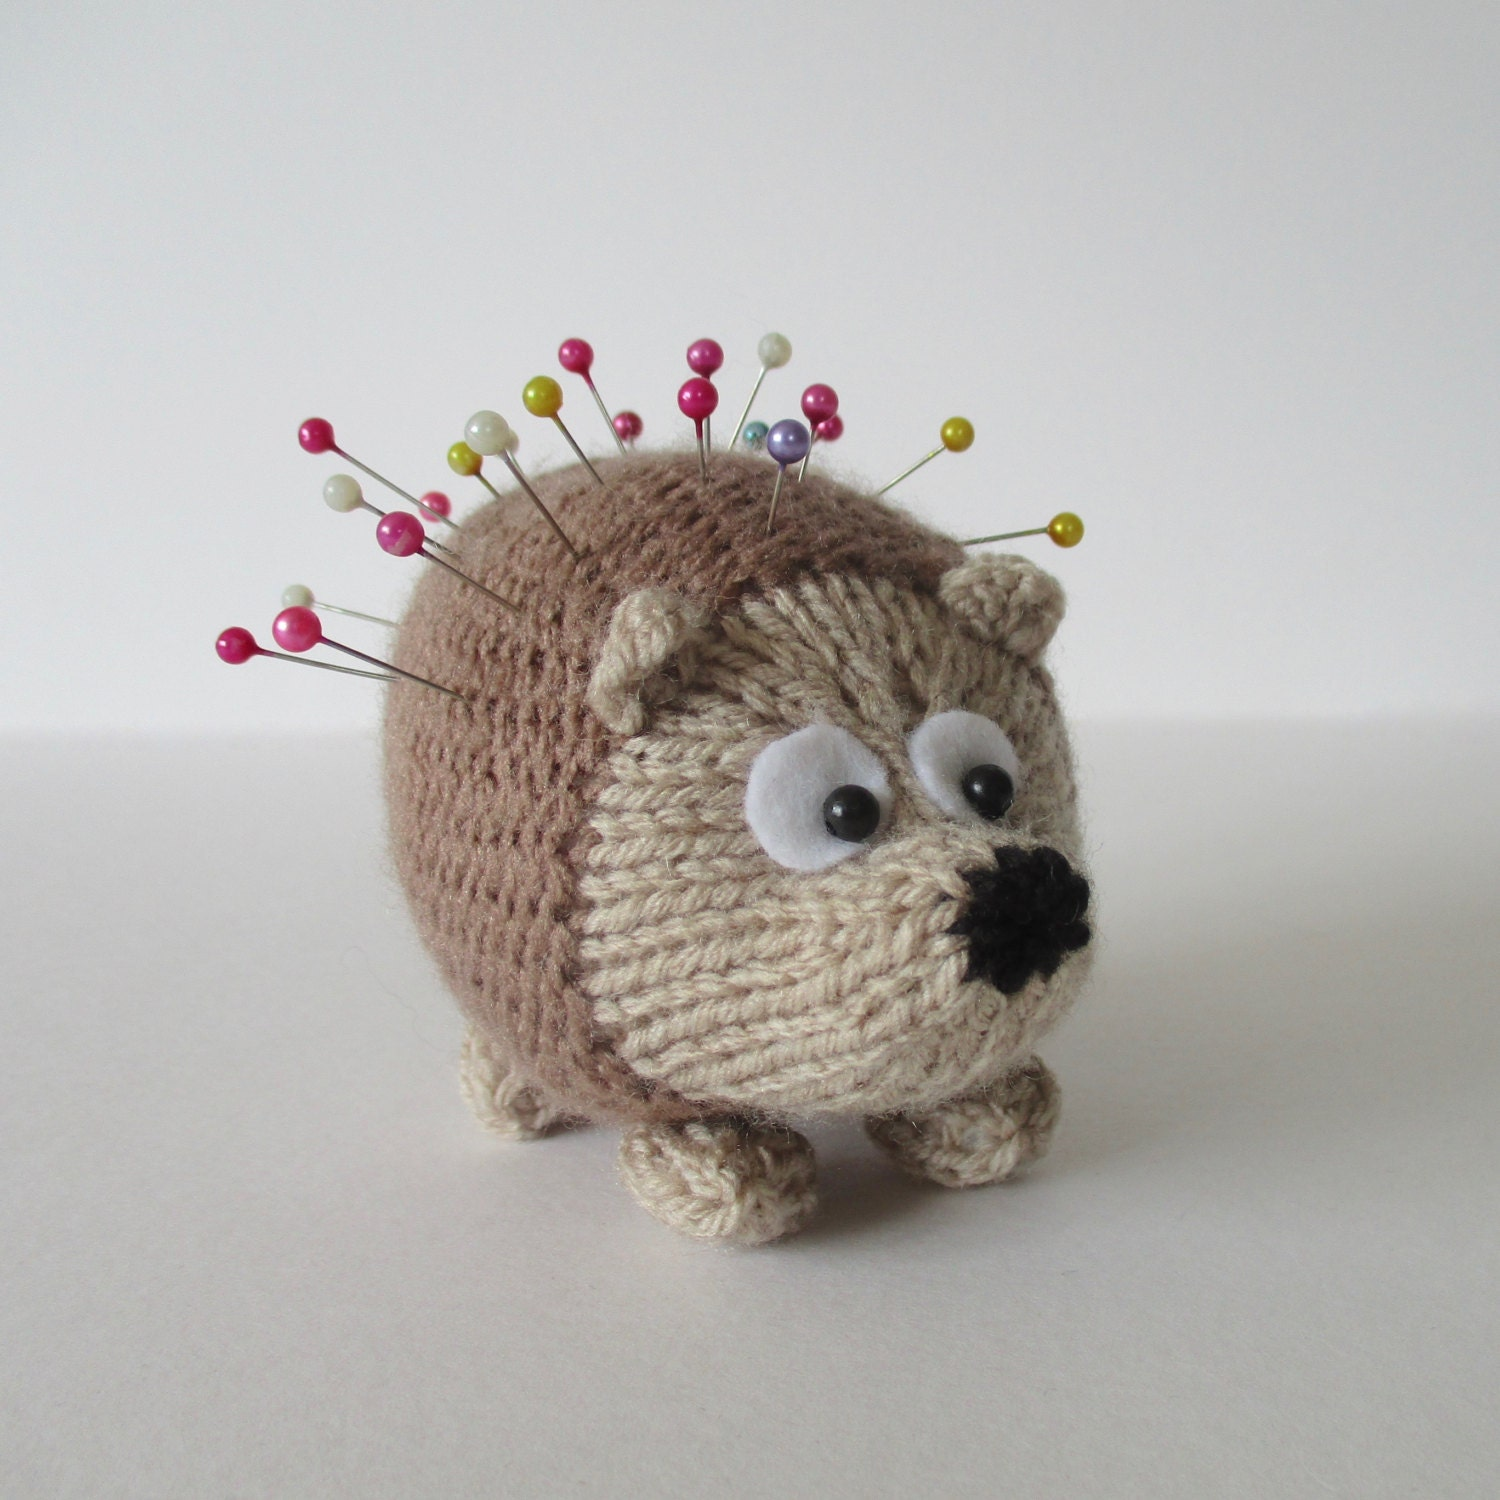 Knitting Pattern For Sonic The Hedgehog Toy : Kensington Hedgehog toy knitting patterns